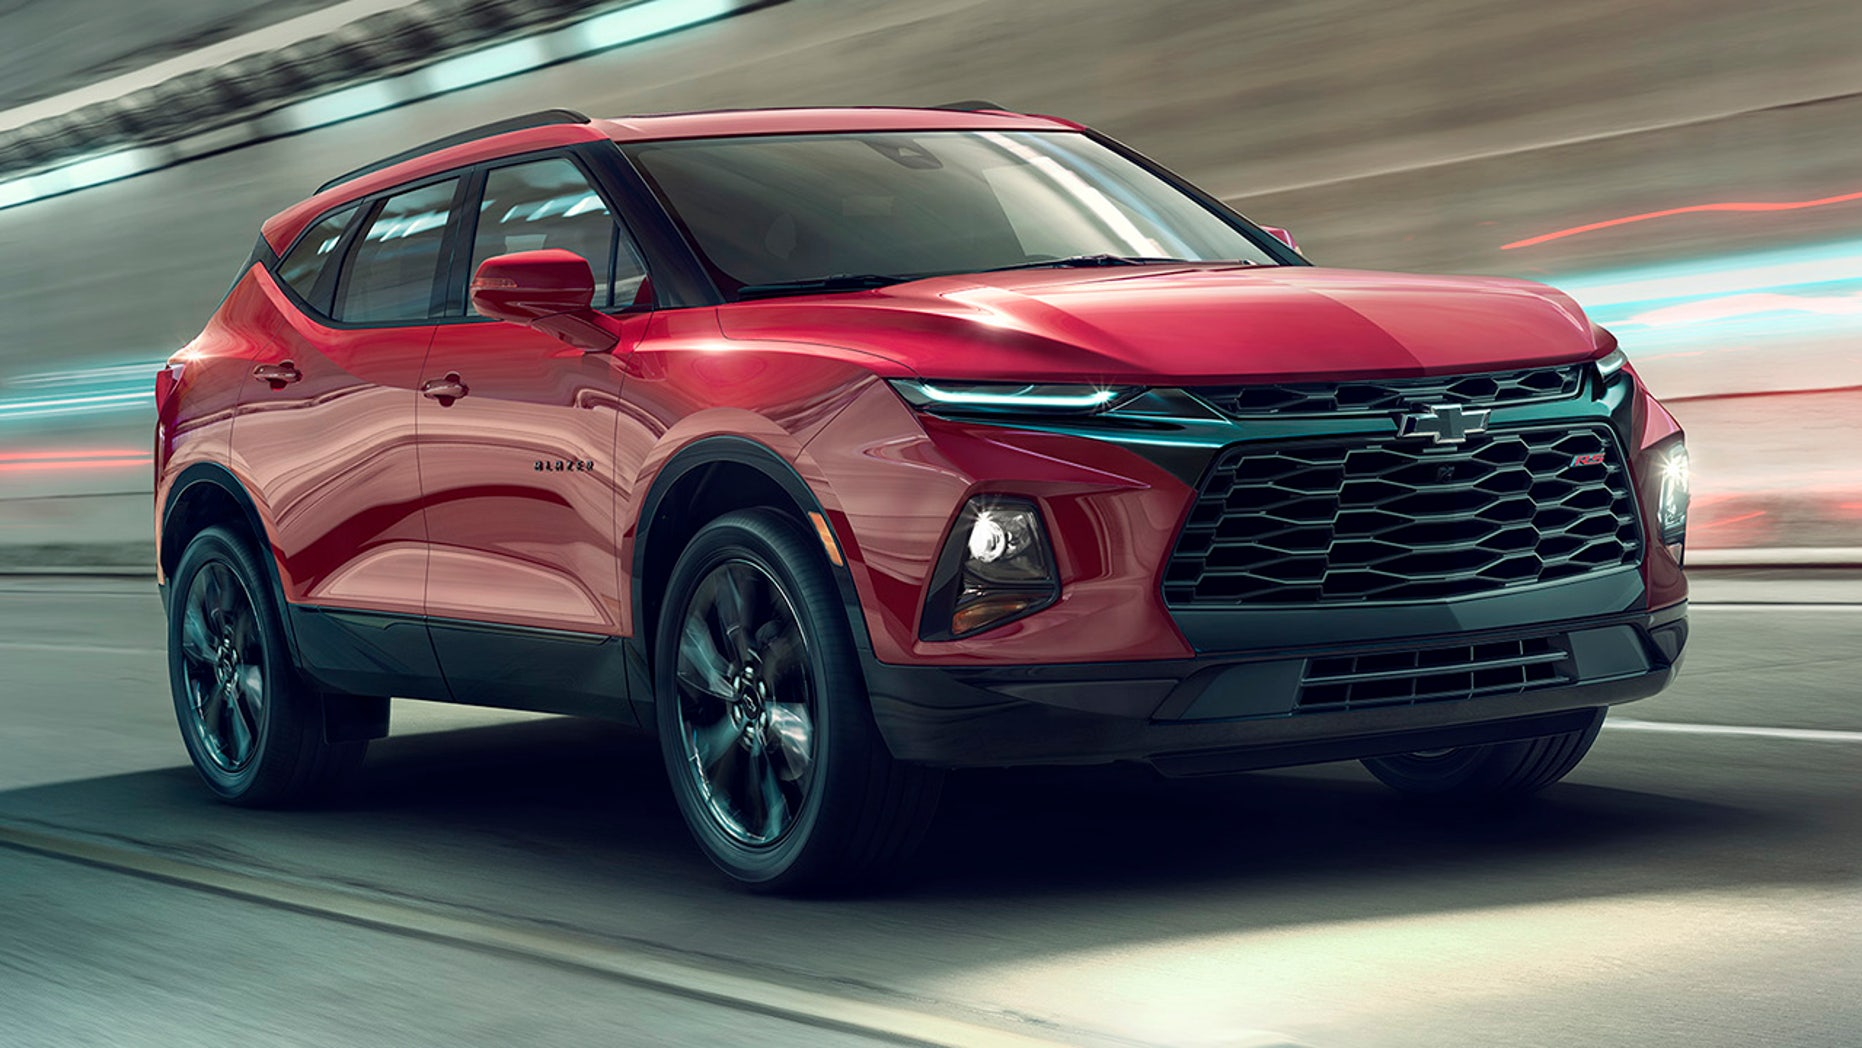 2019 Chevrolet Blazer Rs An Attention Grabbing Midsize Suv Offering Style And Versatility